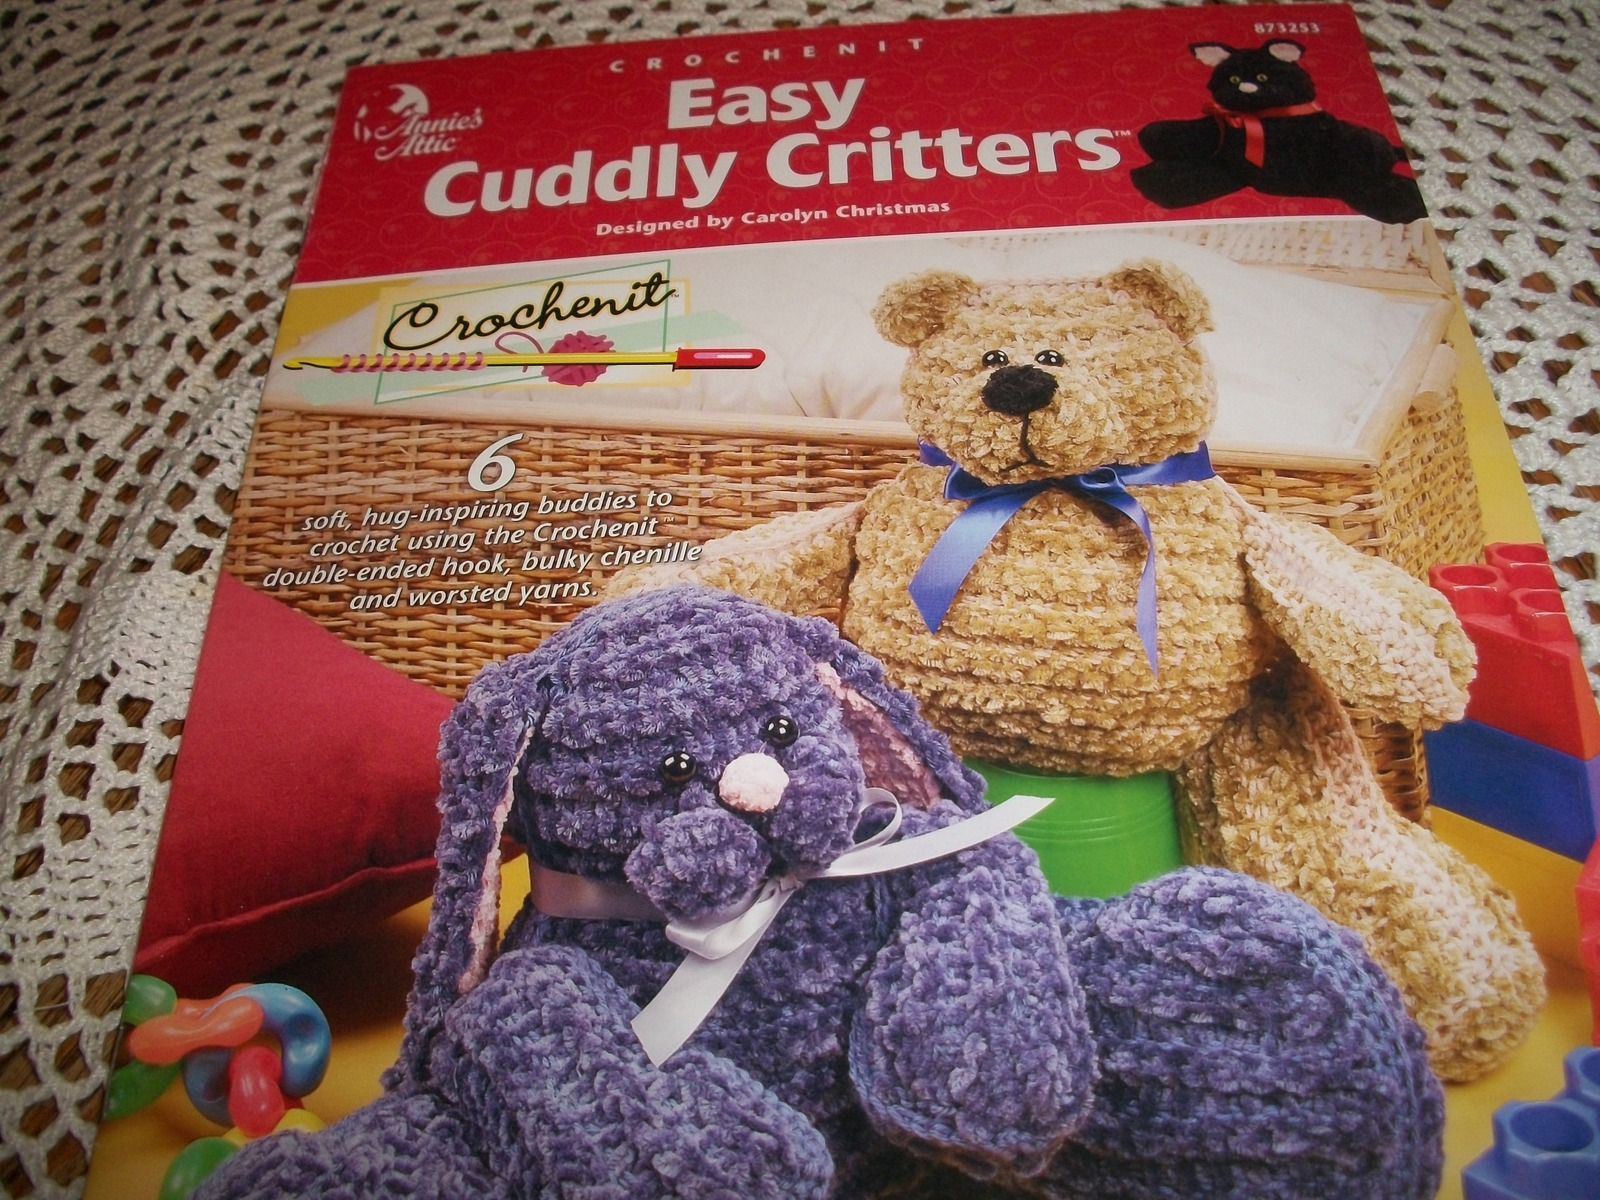 Primary image for Crochenit Easy Cuddly Critters